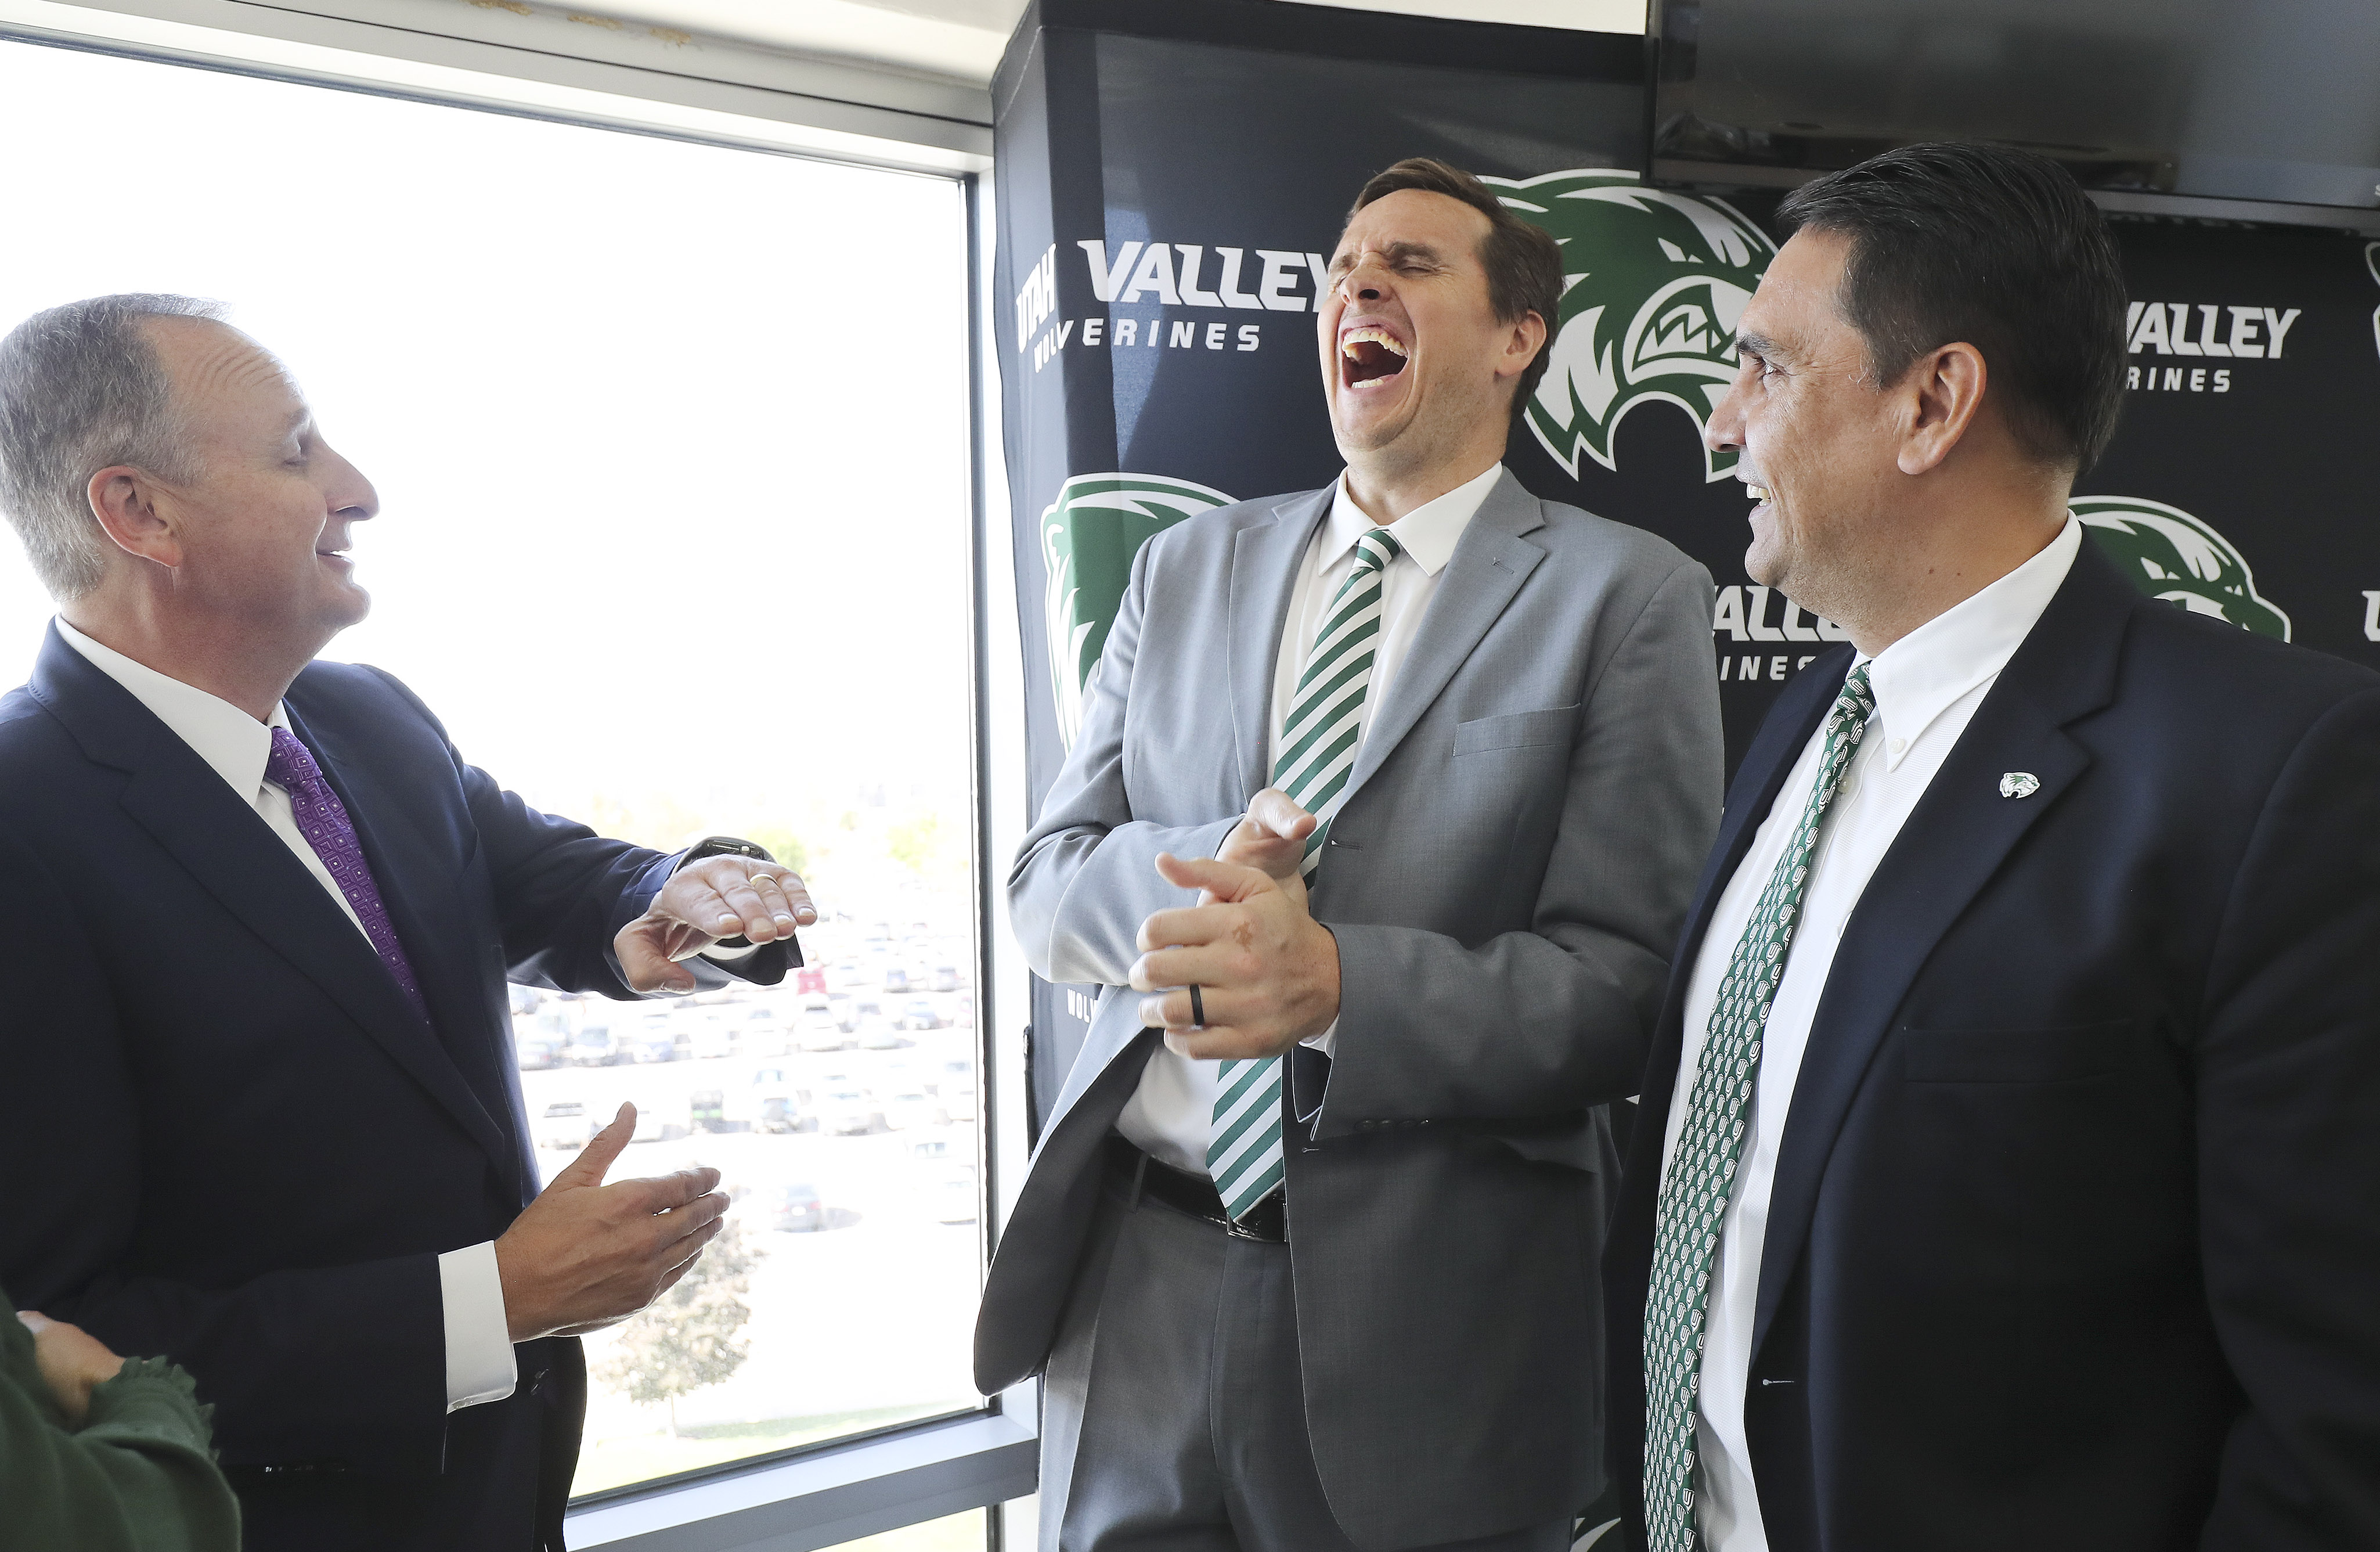 Utah Valley University basketball coach Mark Madsen, center, laughs while speaking with doTerra founding executive Mark Wolfert, left and UVU volleyball coach Sam Atoa after the company announced on Friday, Sept. 27, 2019, that it would donate $17.7 million to the Orem university over the next 10 years.